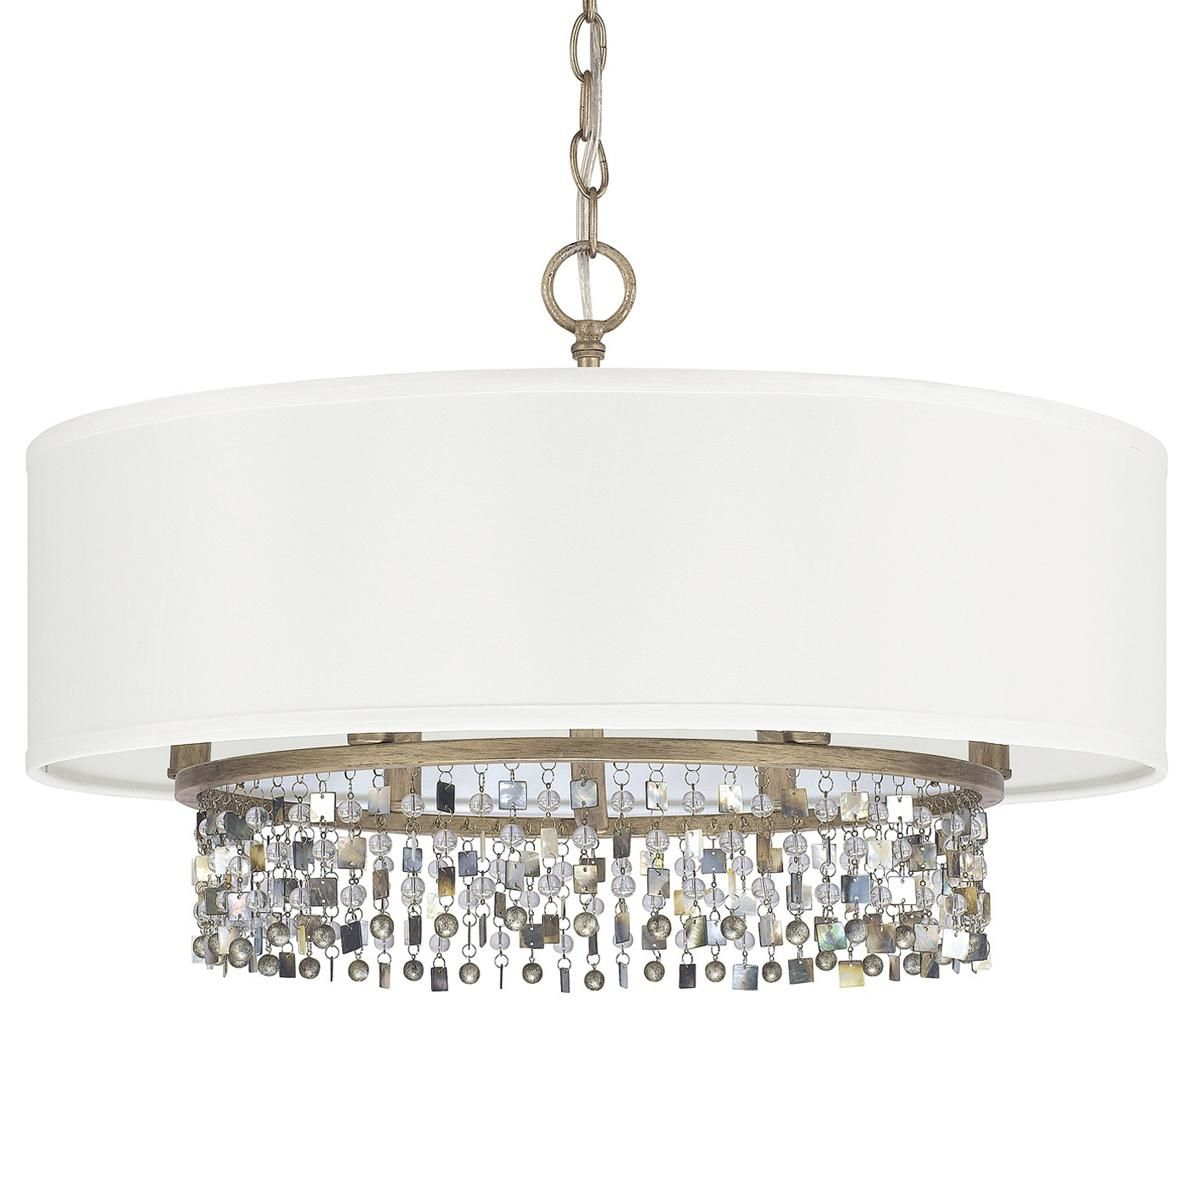 Shell And Crystal Drum Shade Chandelier Drum Pendant Drum Shade Chandelier Capital Lighting